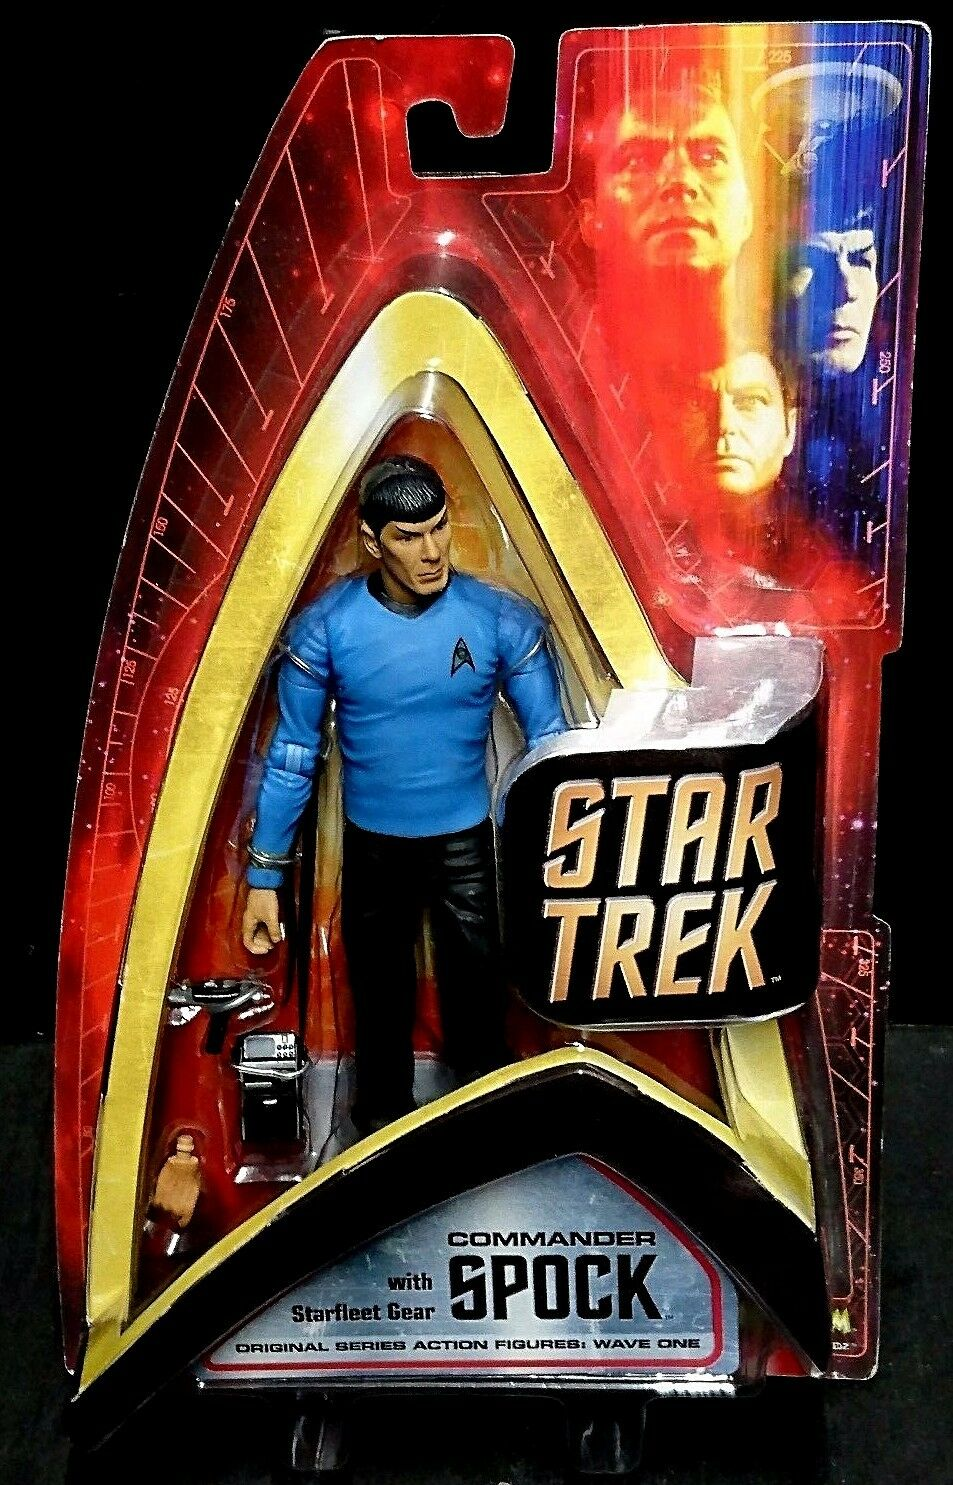 Star Trek Original Series Wave One COMMANDER SPOCK New  Art Asylum Leonard Nimoy